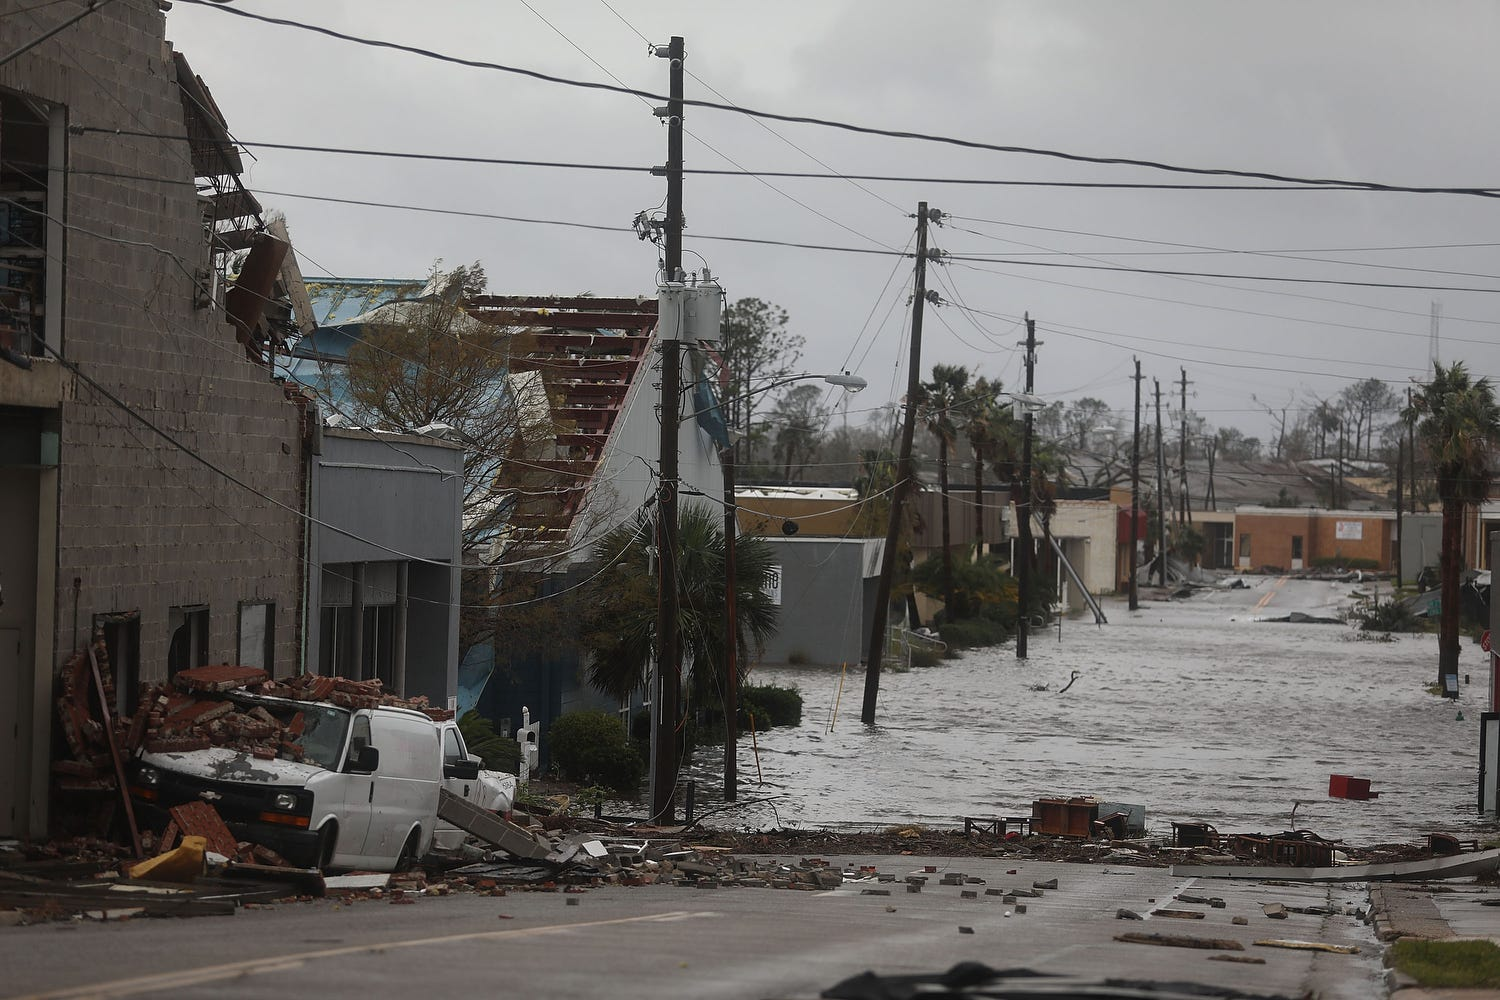 Hurricane Michael: Army Corps preparing to cover 'tens of thousands' of damaged roofs